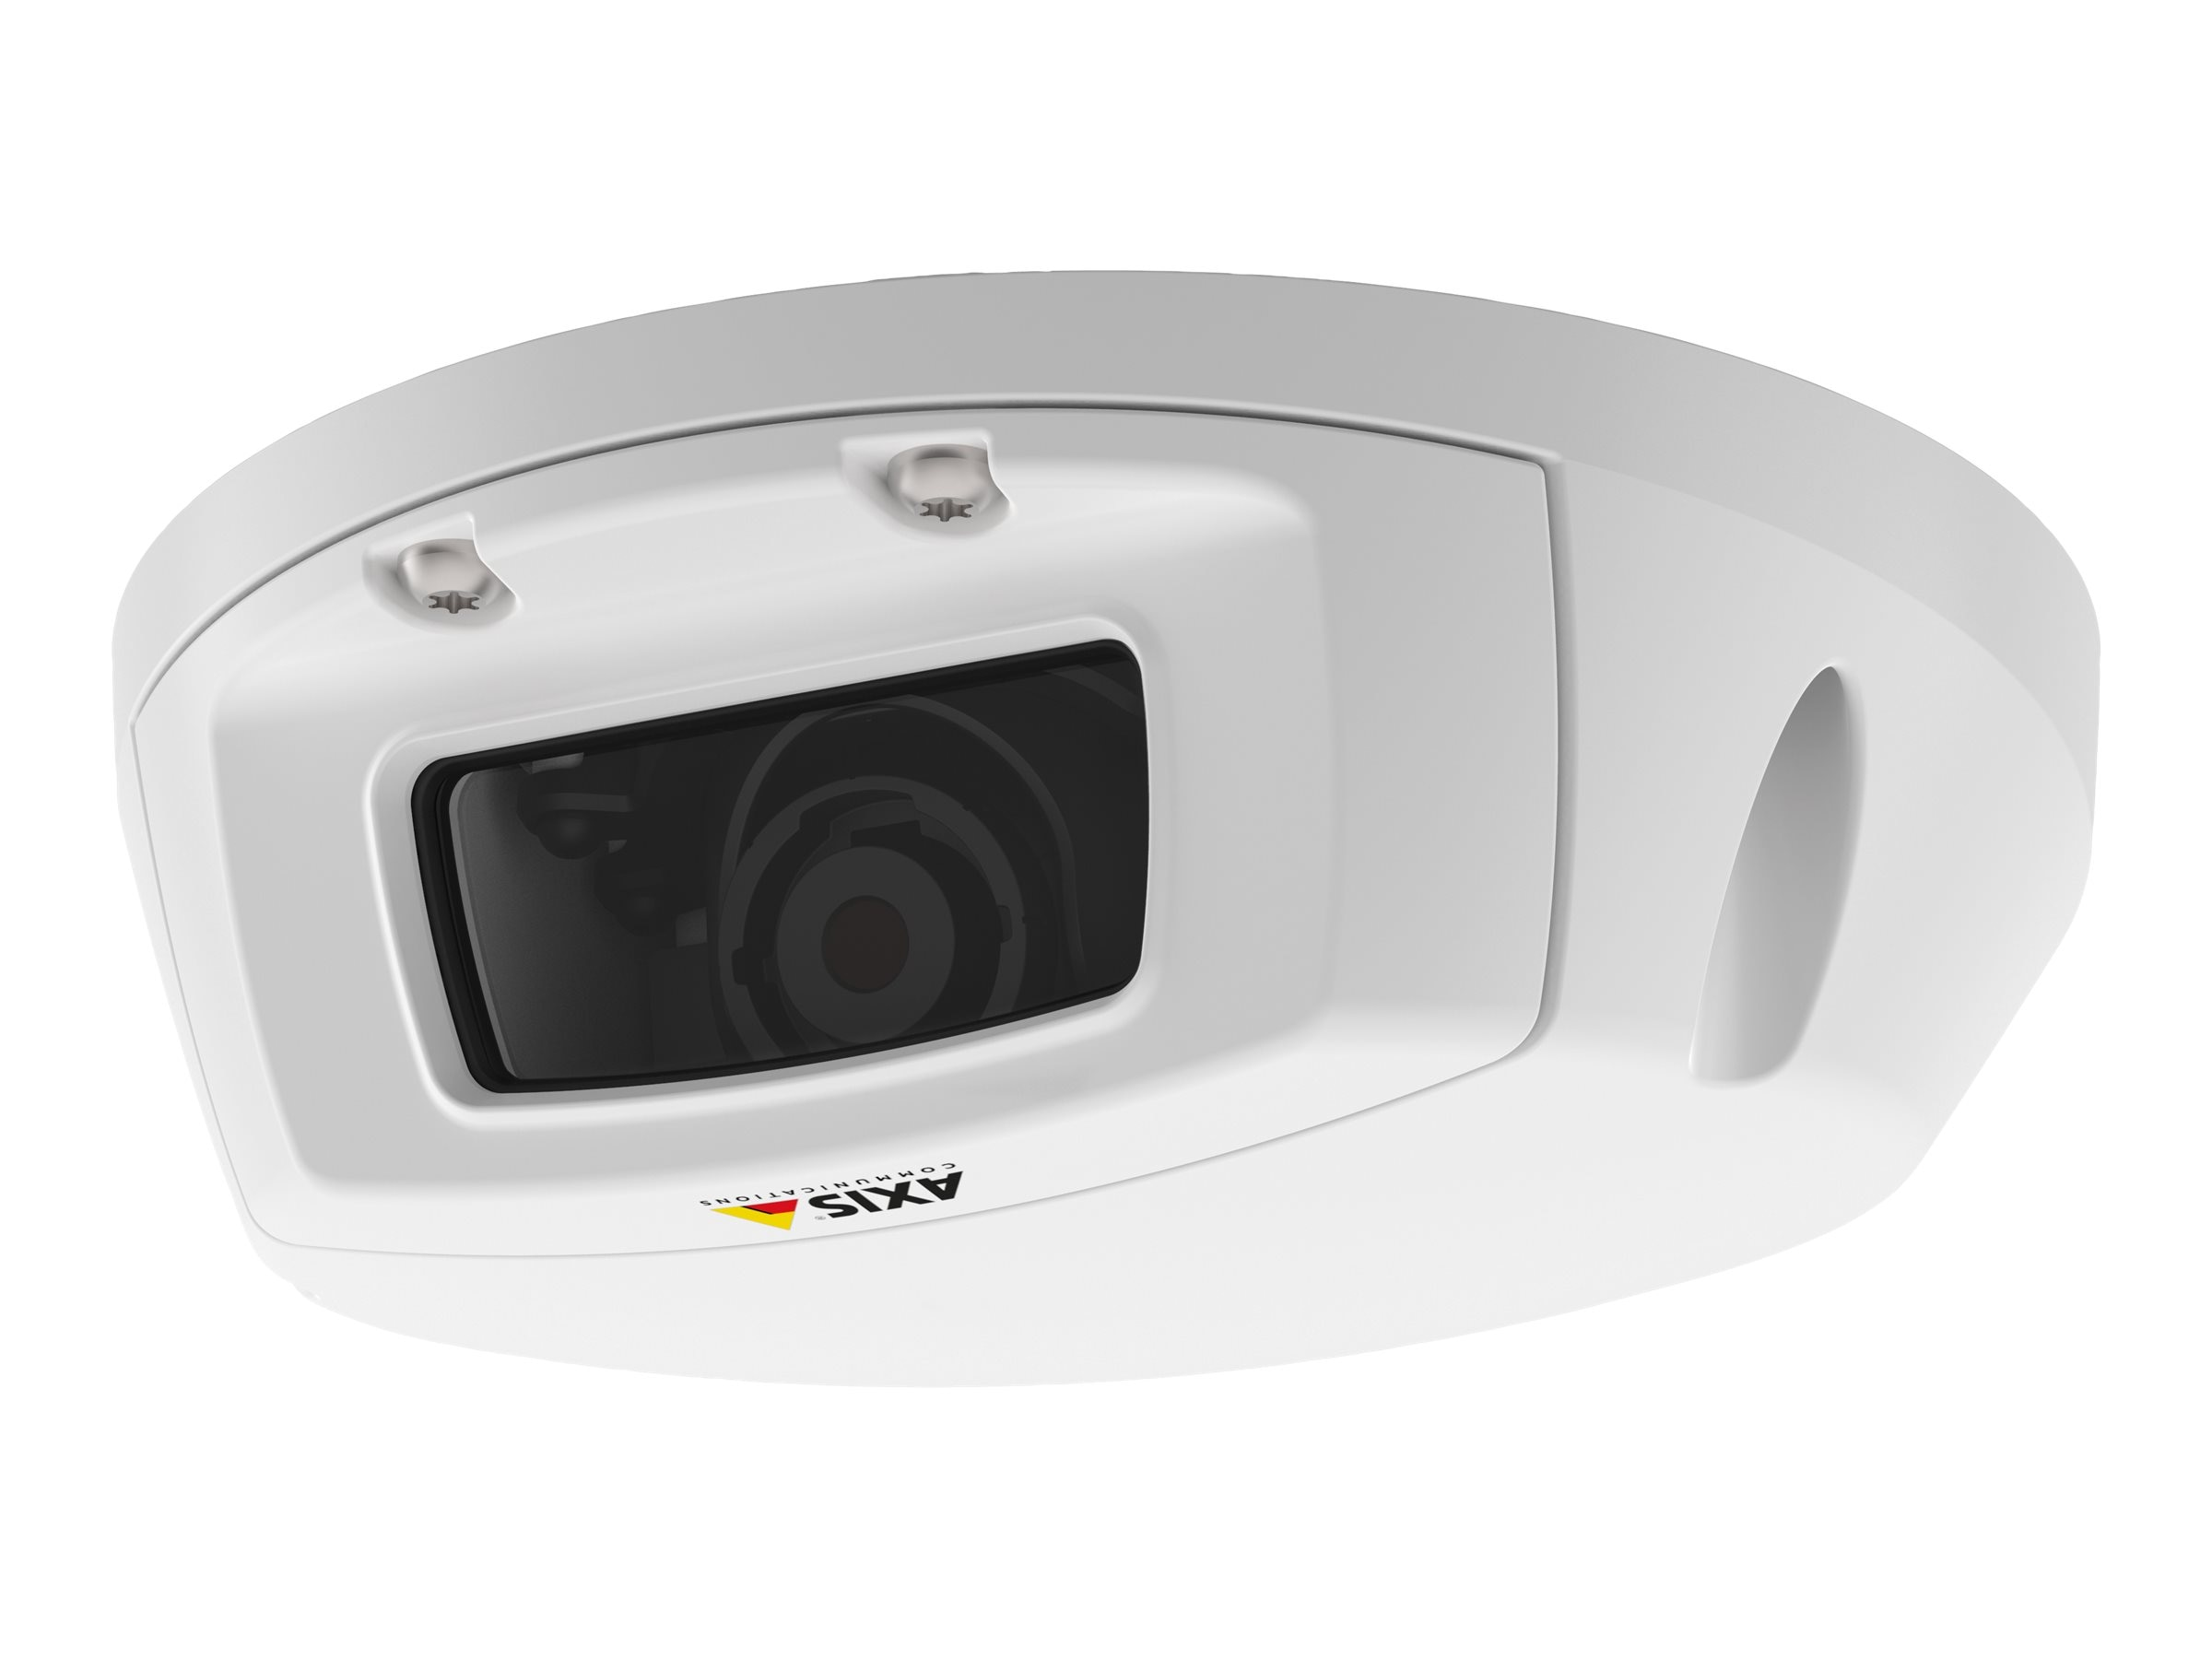 Axis P3905-RE M12 Full HD Outdoor Network Camera, 0663-001, 22899774, Cameras - Security